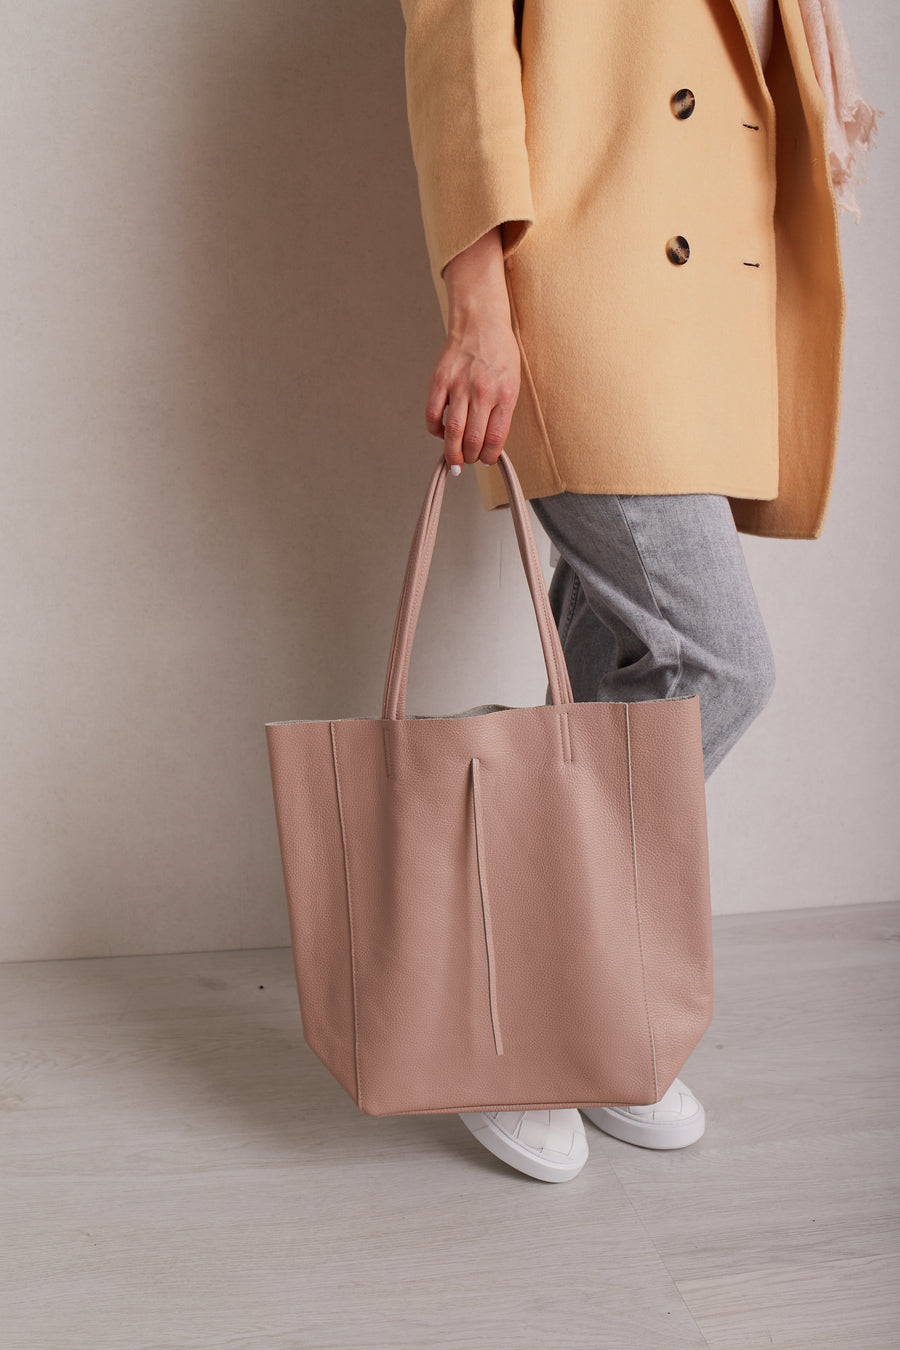 jackieandkate Tasche rose